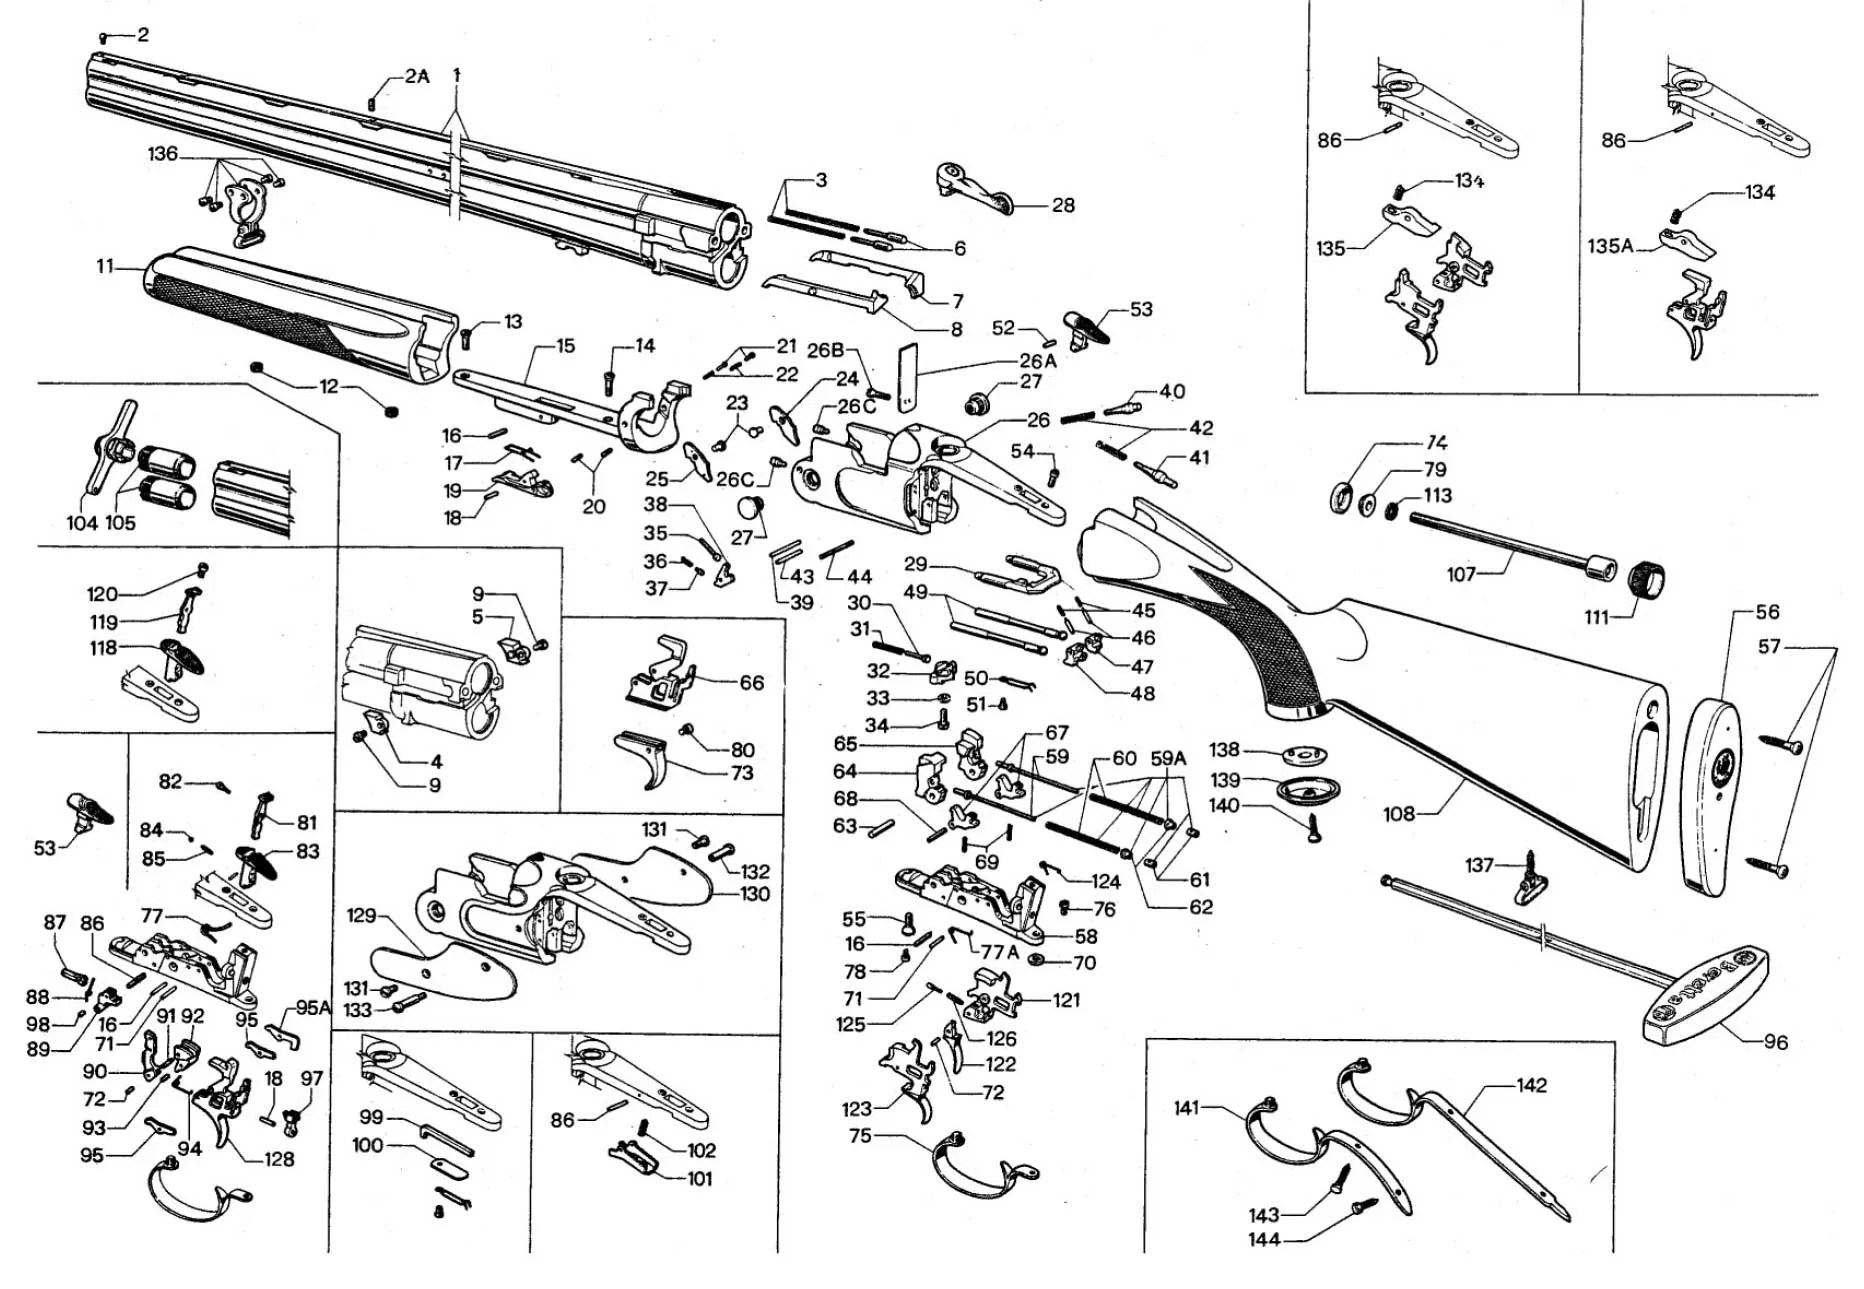 mossberg 500 trigger assembly diagram pt cruiser wiring pdf beretta shotgun parts related keywords - long tail ...